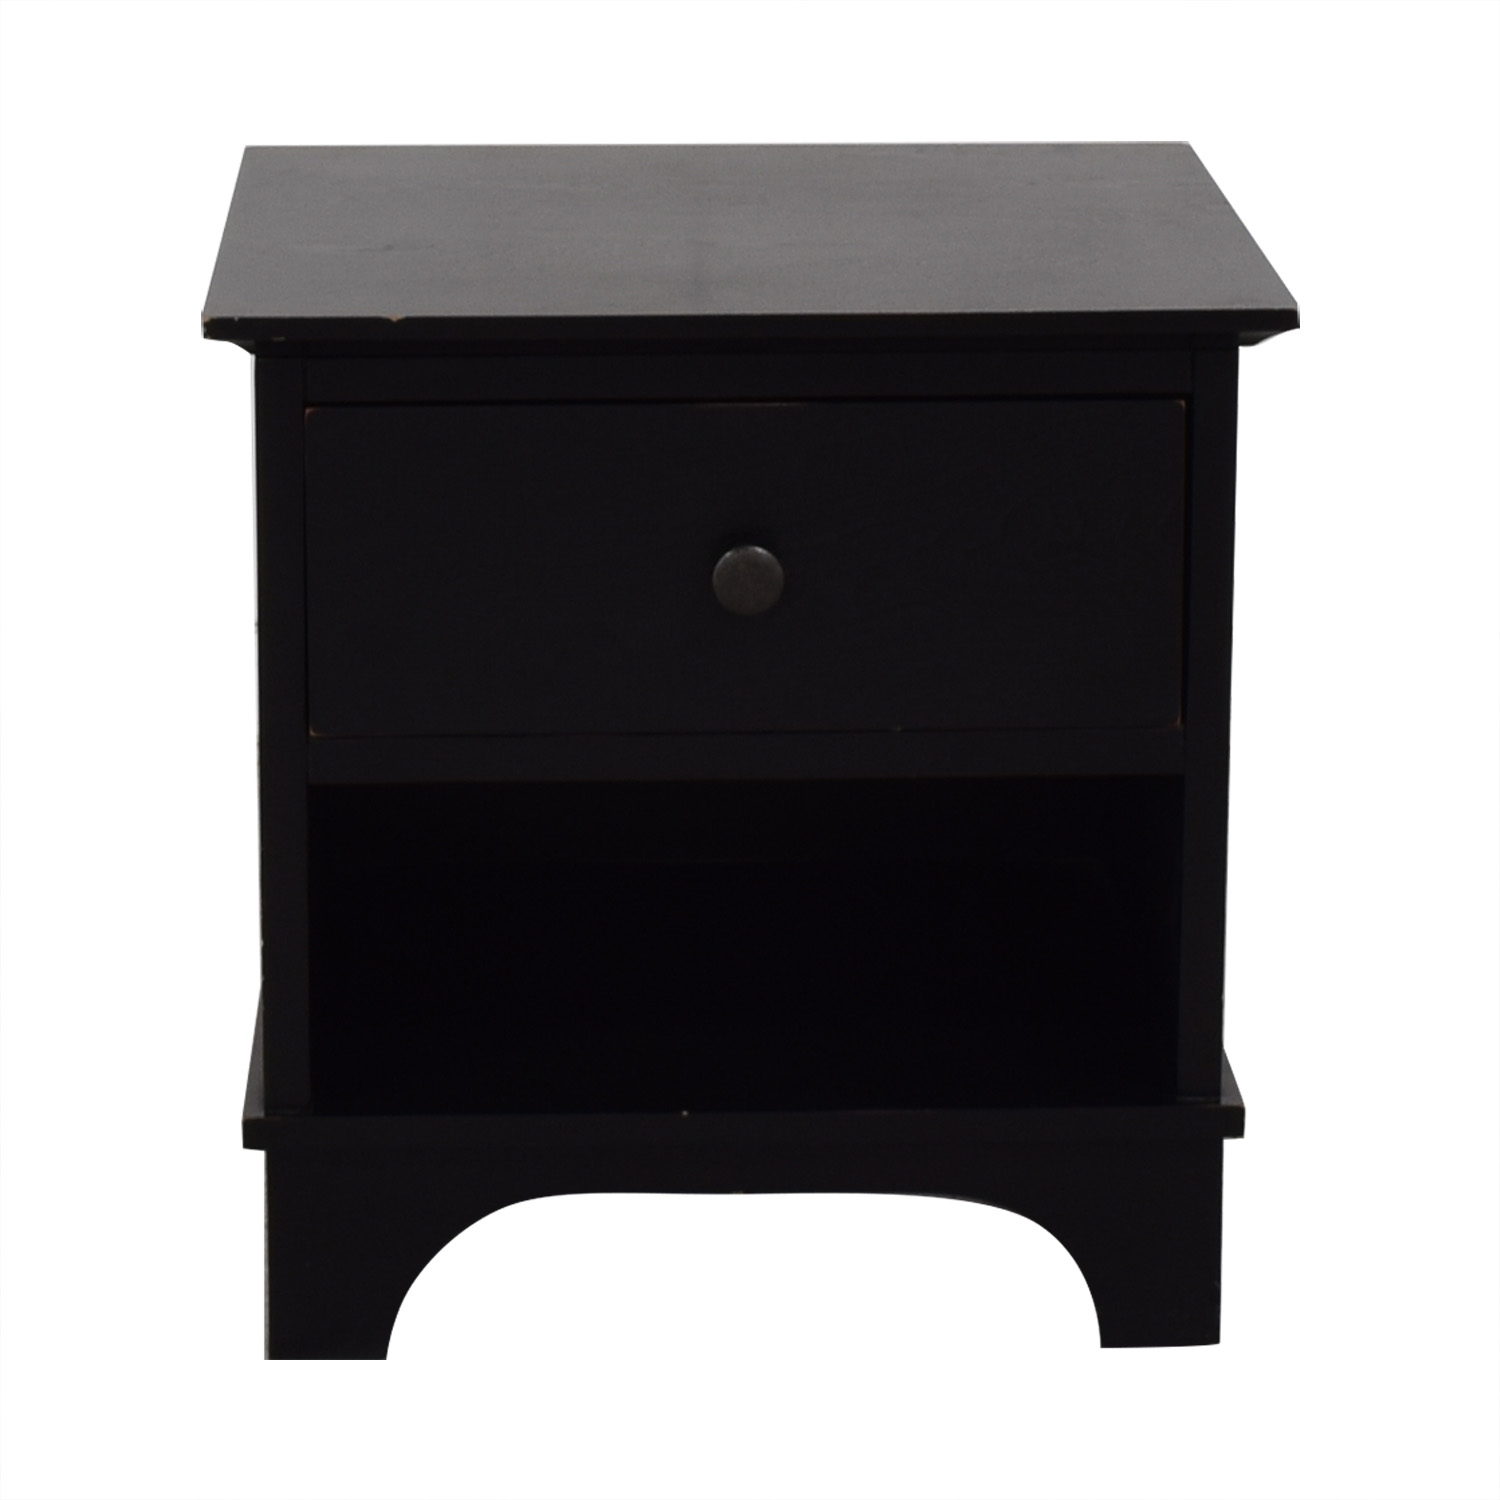 Pottery Barn End Table / Tables